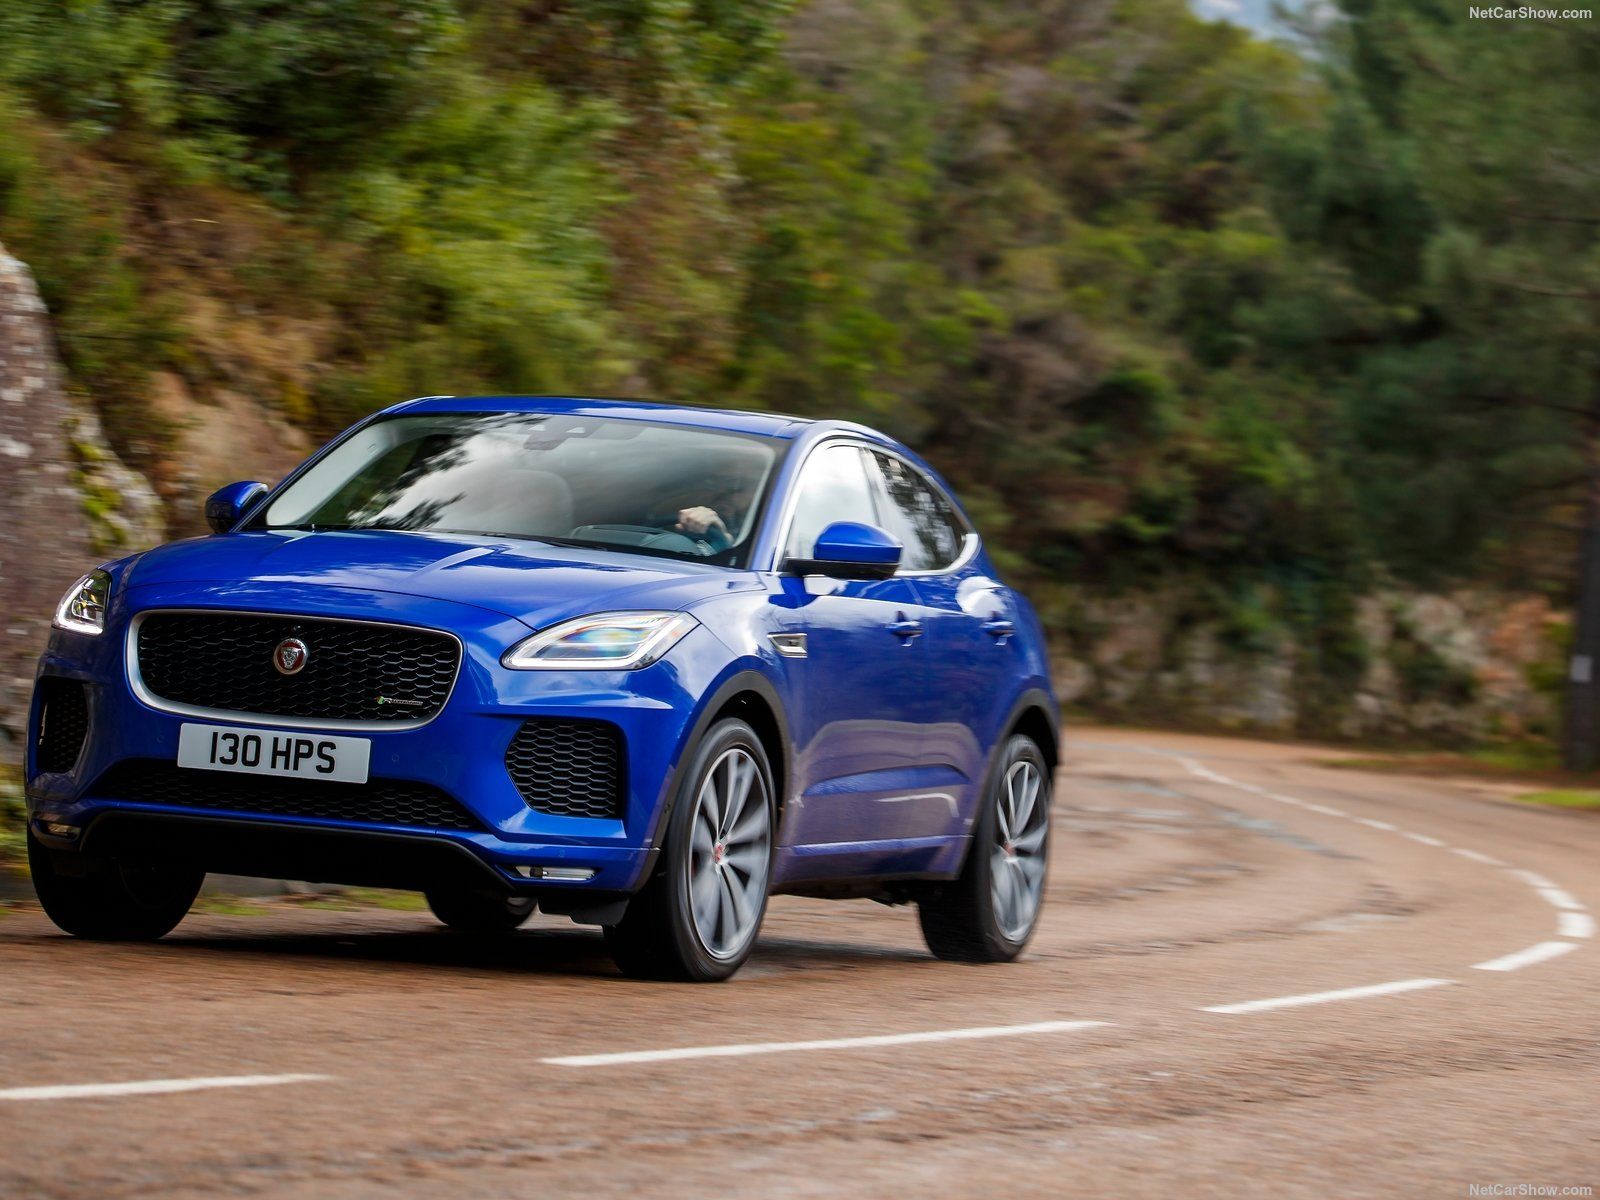 Jaguar E-Pace photo 185941